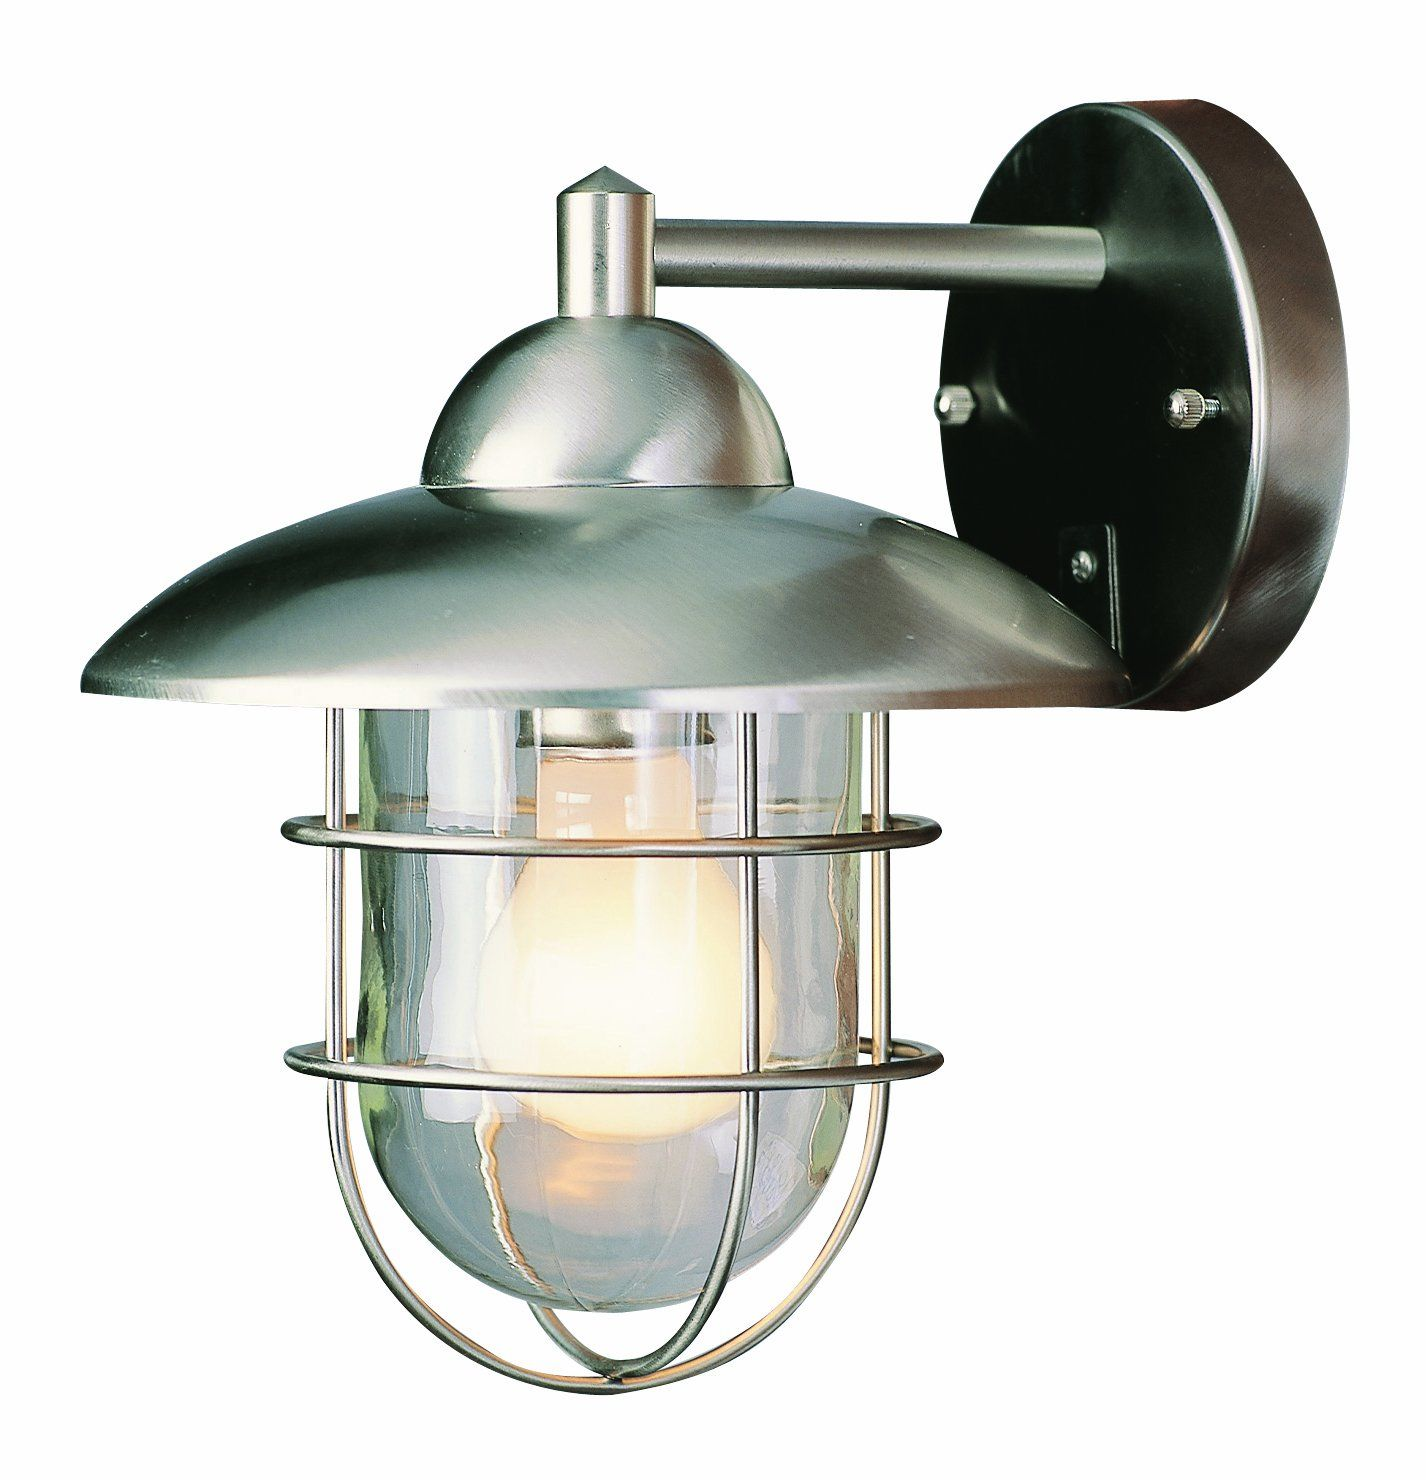 Coastal Outdoor Lighting Trans Globe Lighting 4370 St Coastal Coach 8Inch Outdoor Wall